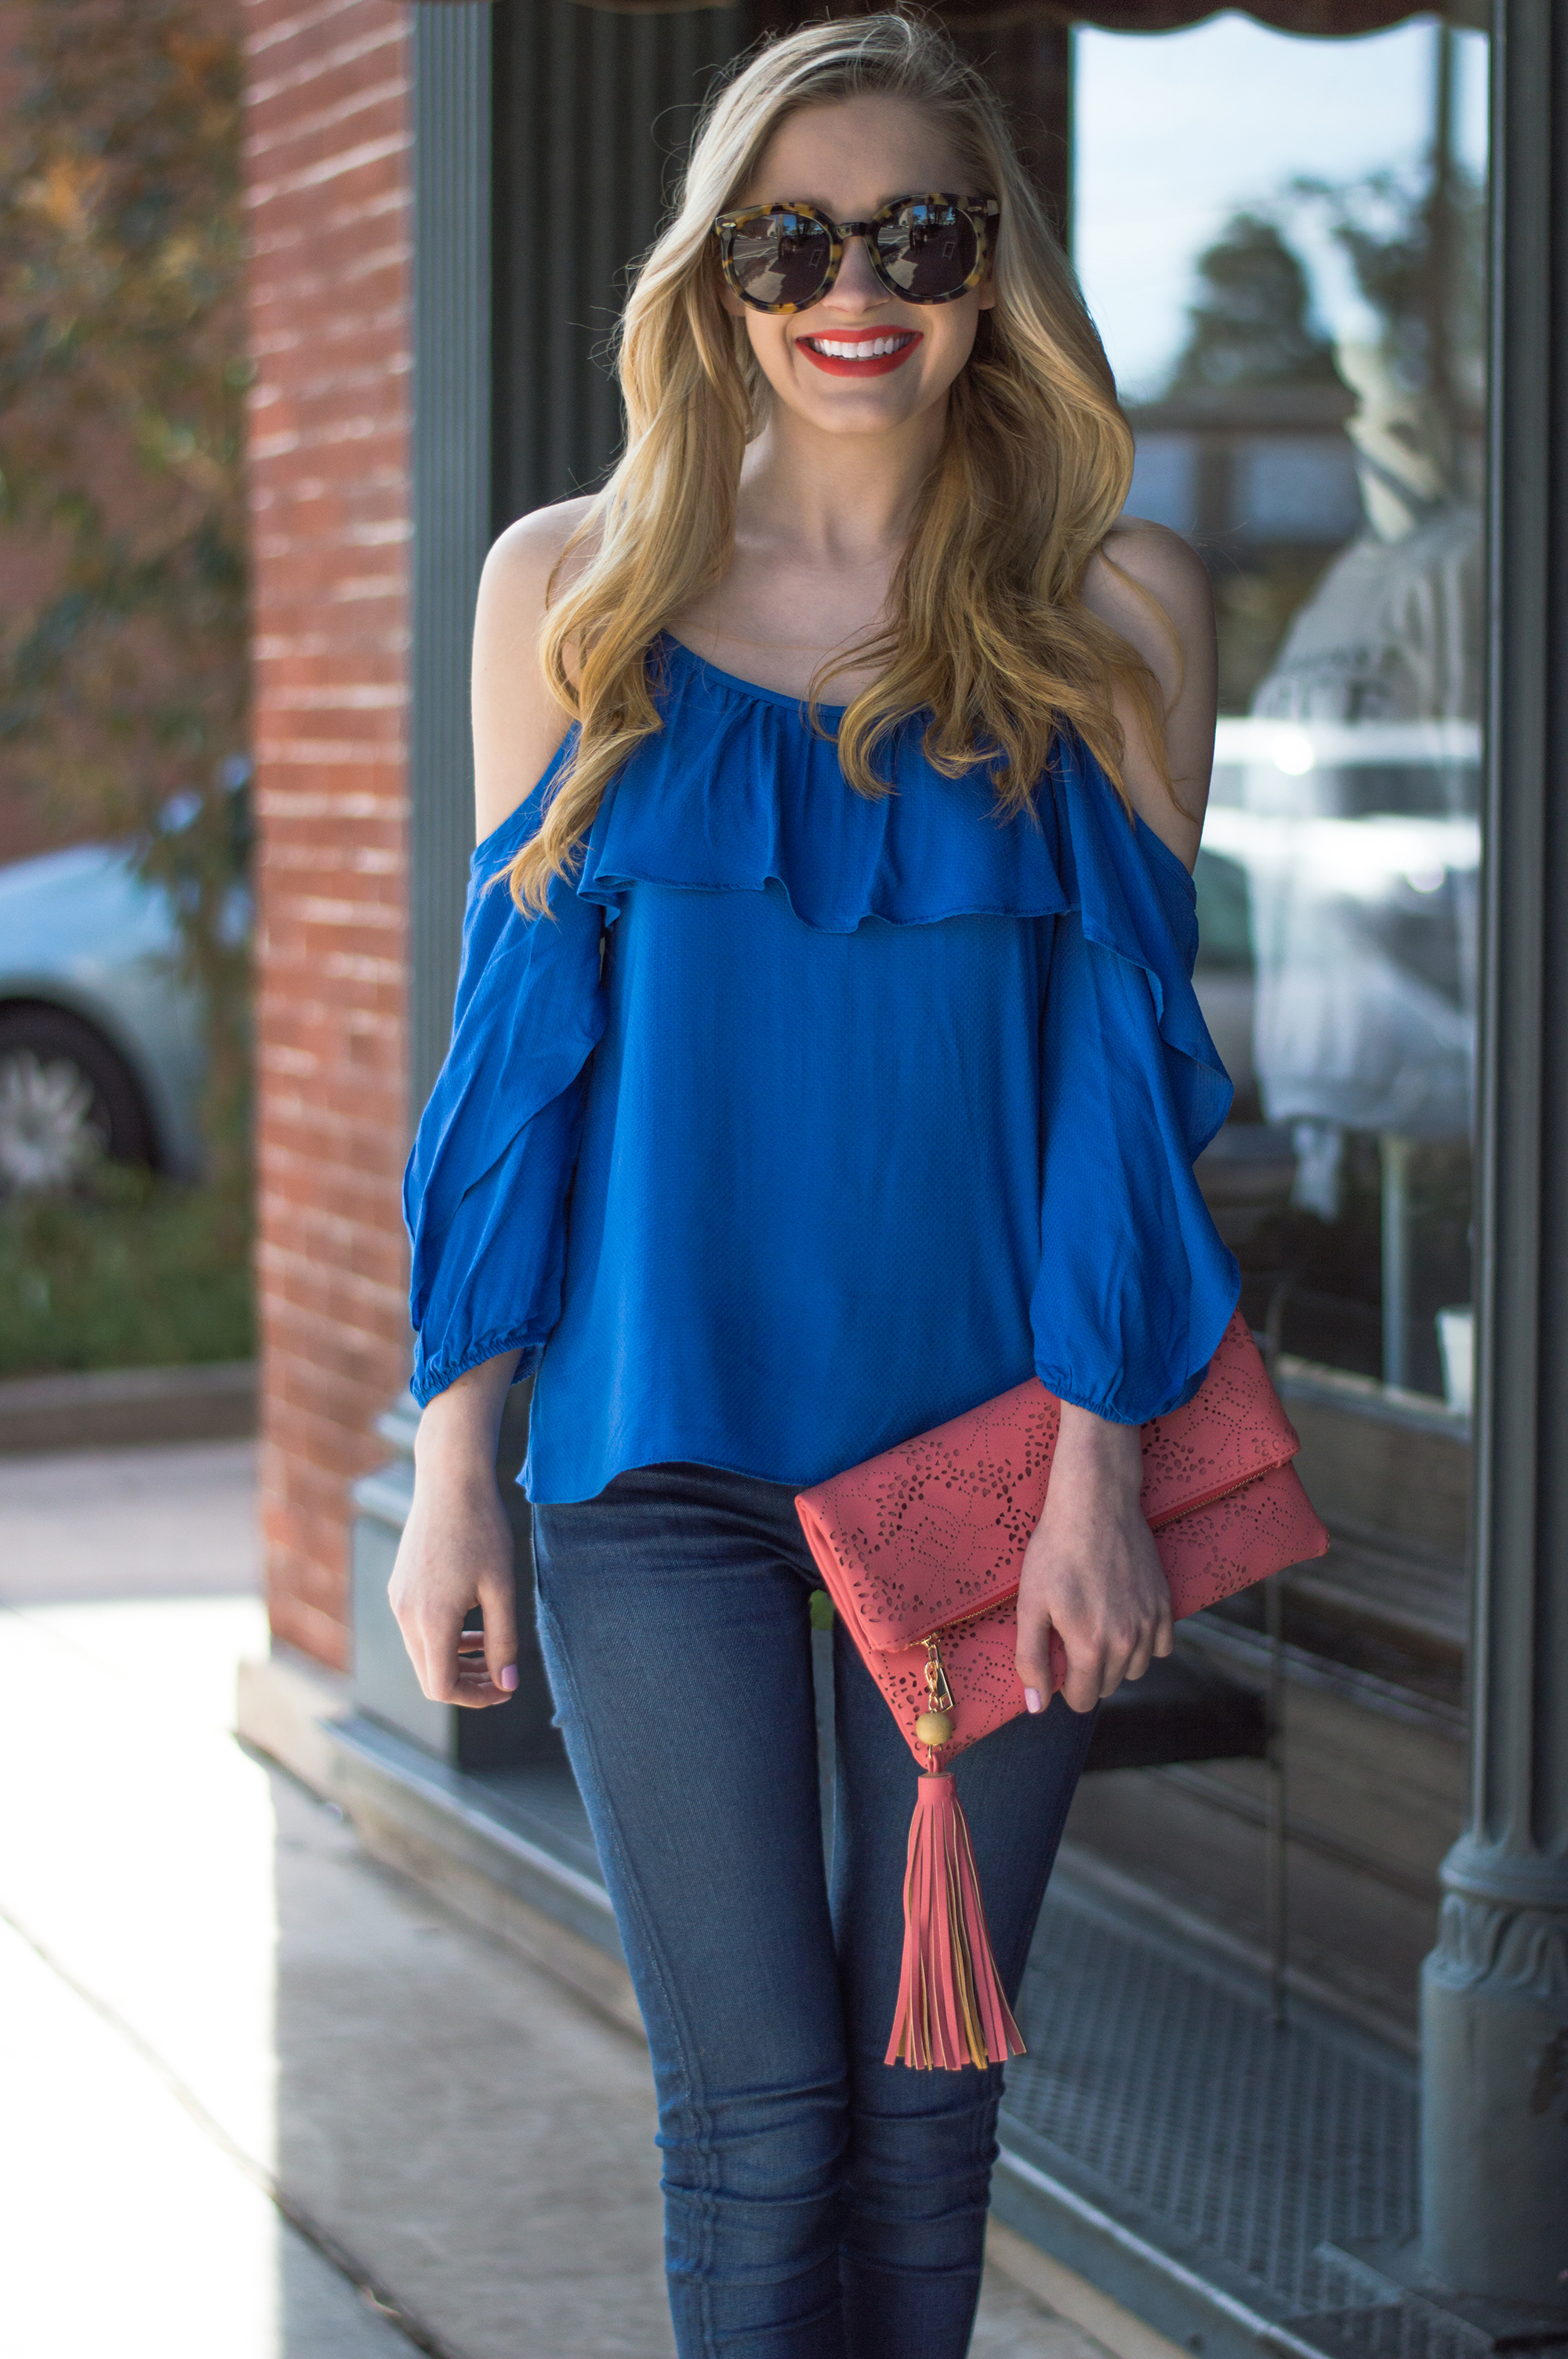 styelled-blog-elle-elisabeth-ootd-hudson-jeans-off-the-shoulder-top-karen-walker-super-duper-thistle-mac-lady-danger-jessica-simpson-brick-city-closet-spring-blue-06